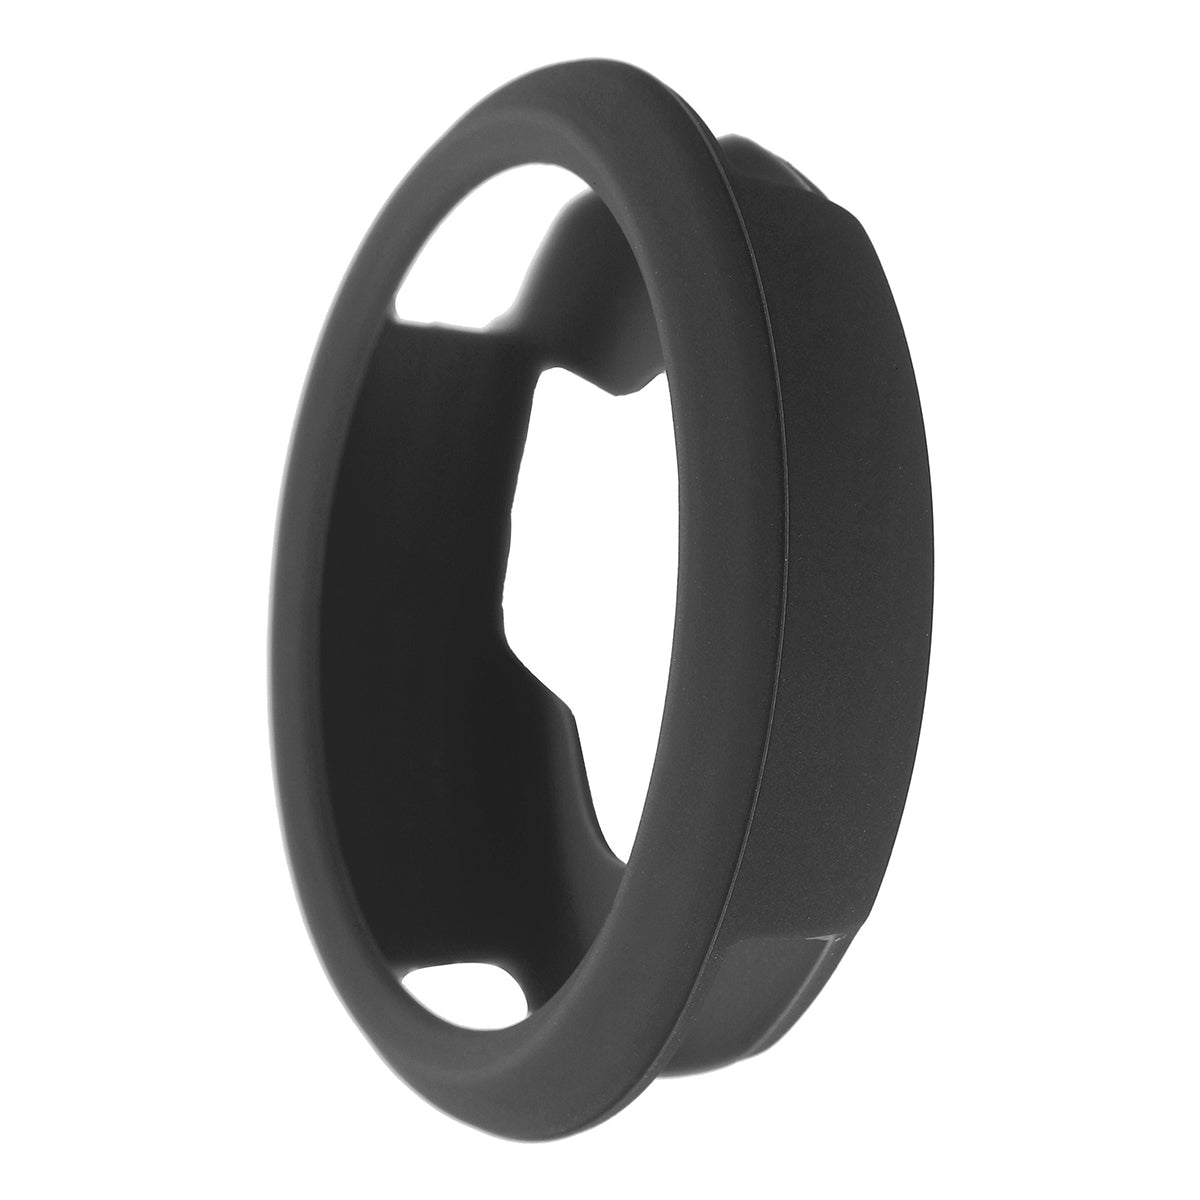 Garmin Watch Cover Protective Skin Case for Garmin Vivomove HR